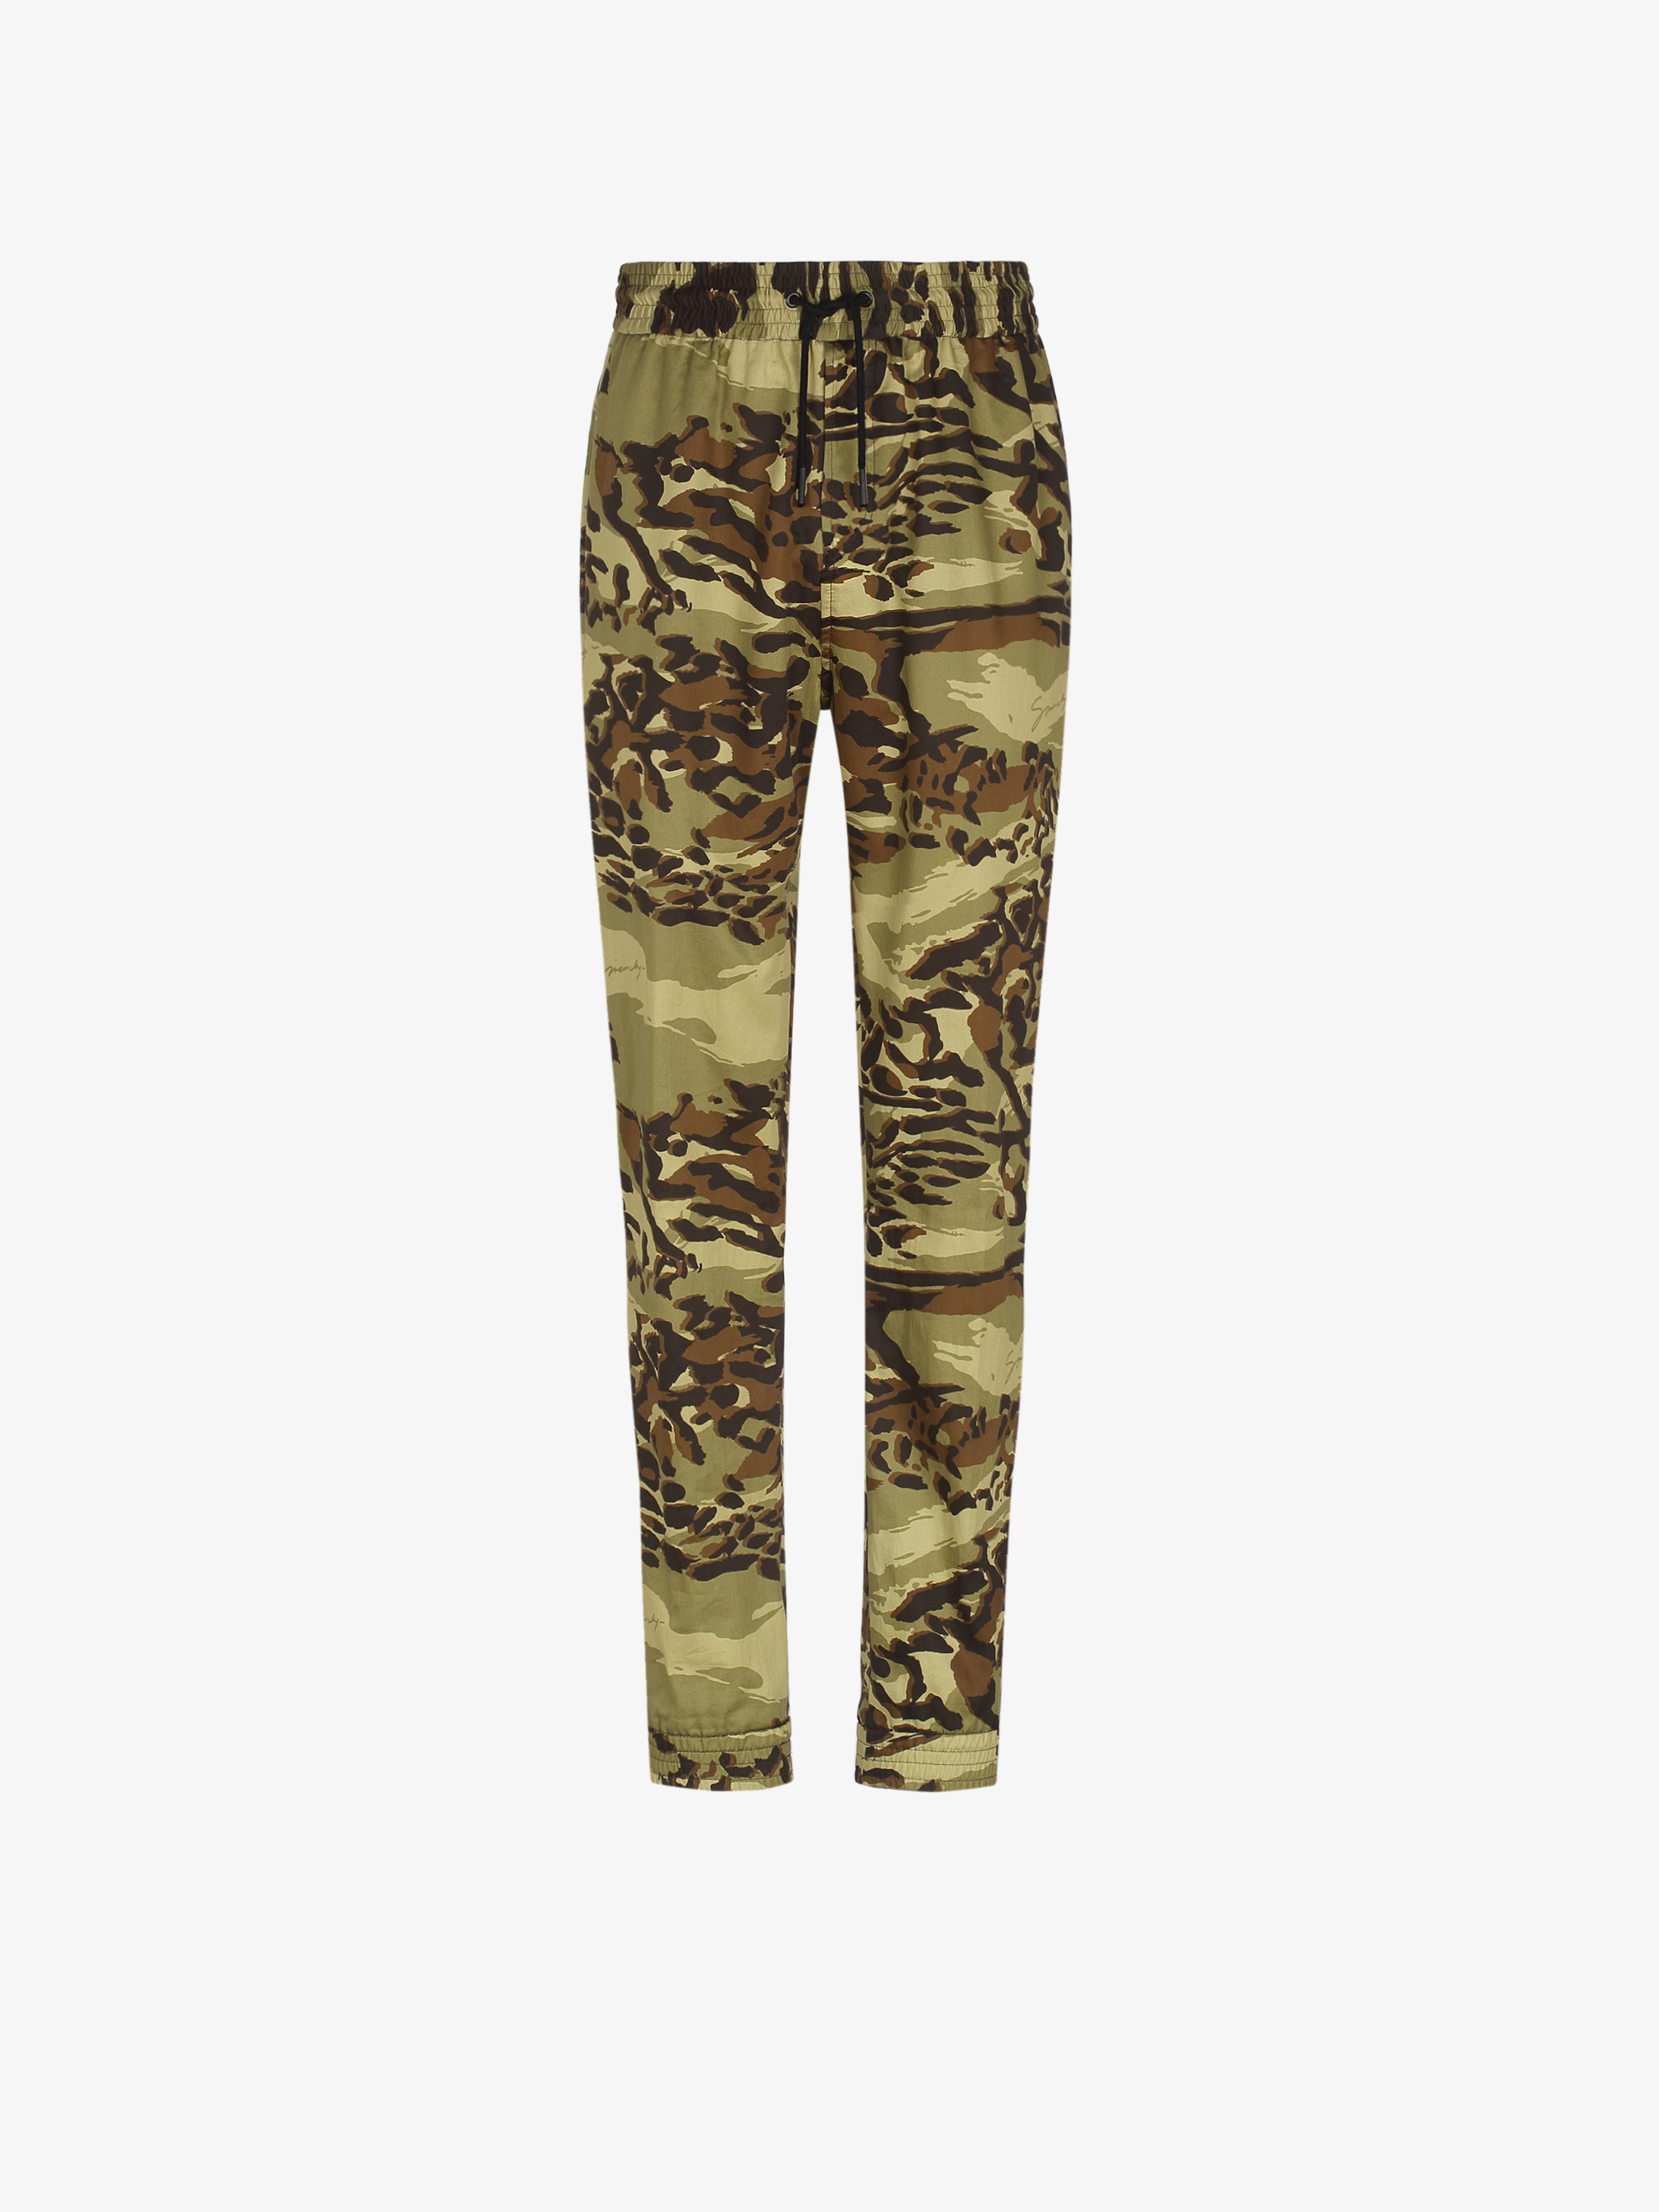 Camouflage jogger pants in coton twill